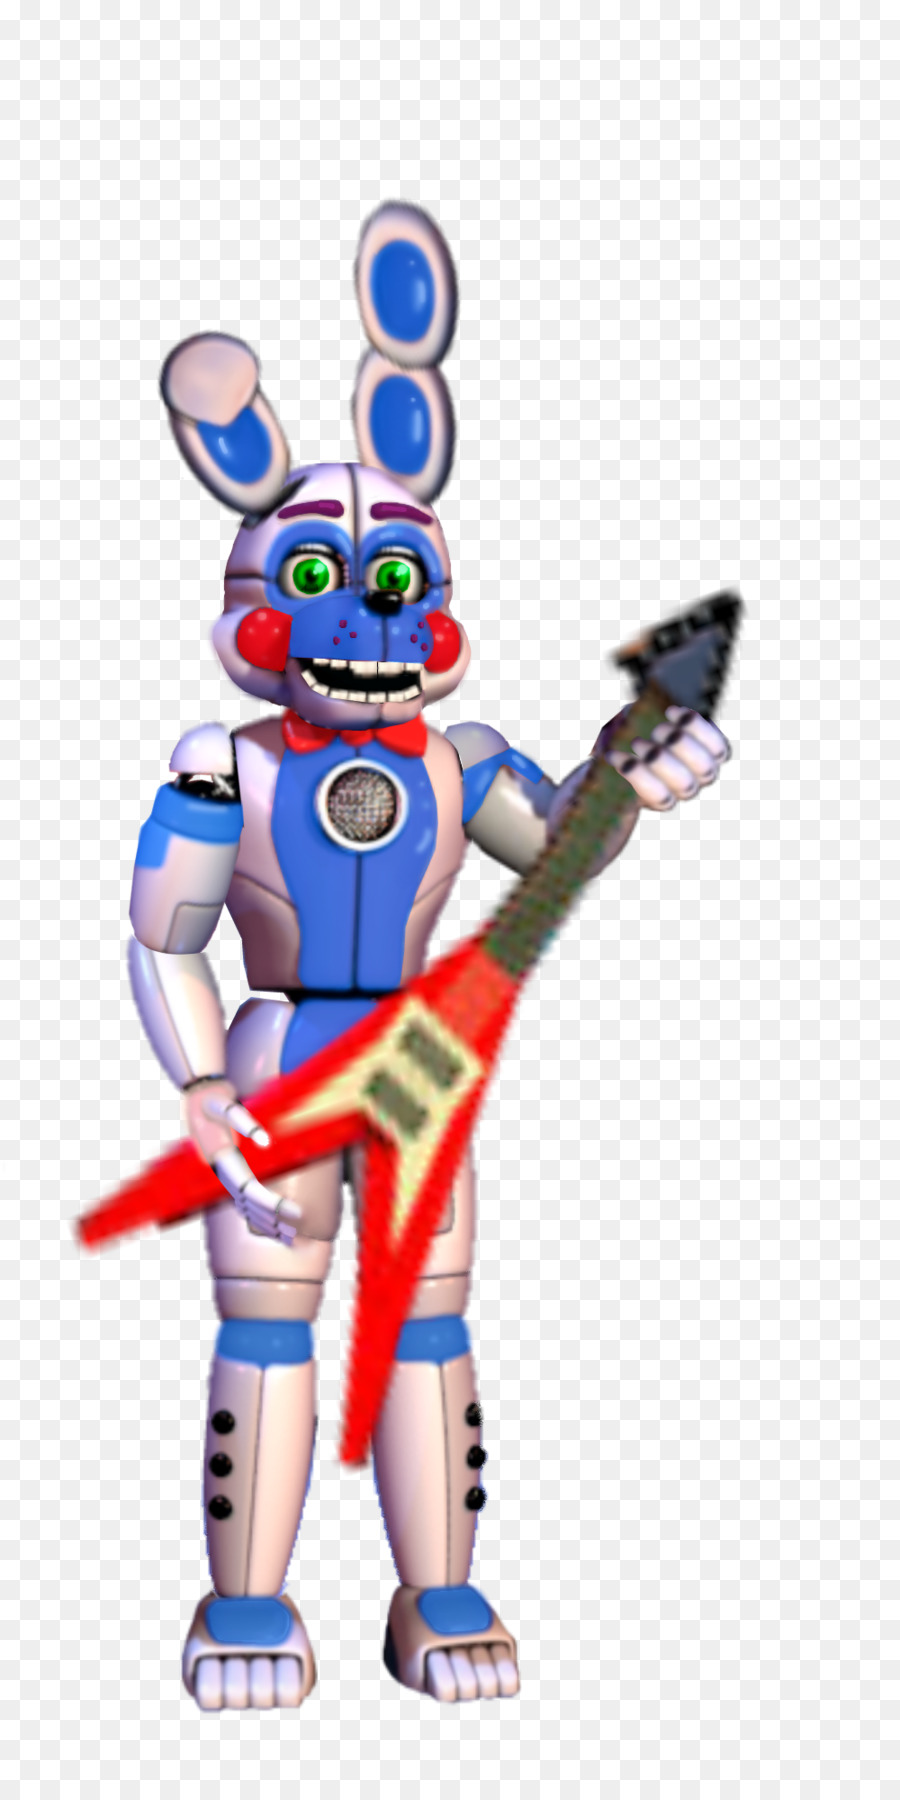 Five Nights at Freddy's: Sister Location Dog Robotic pet